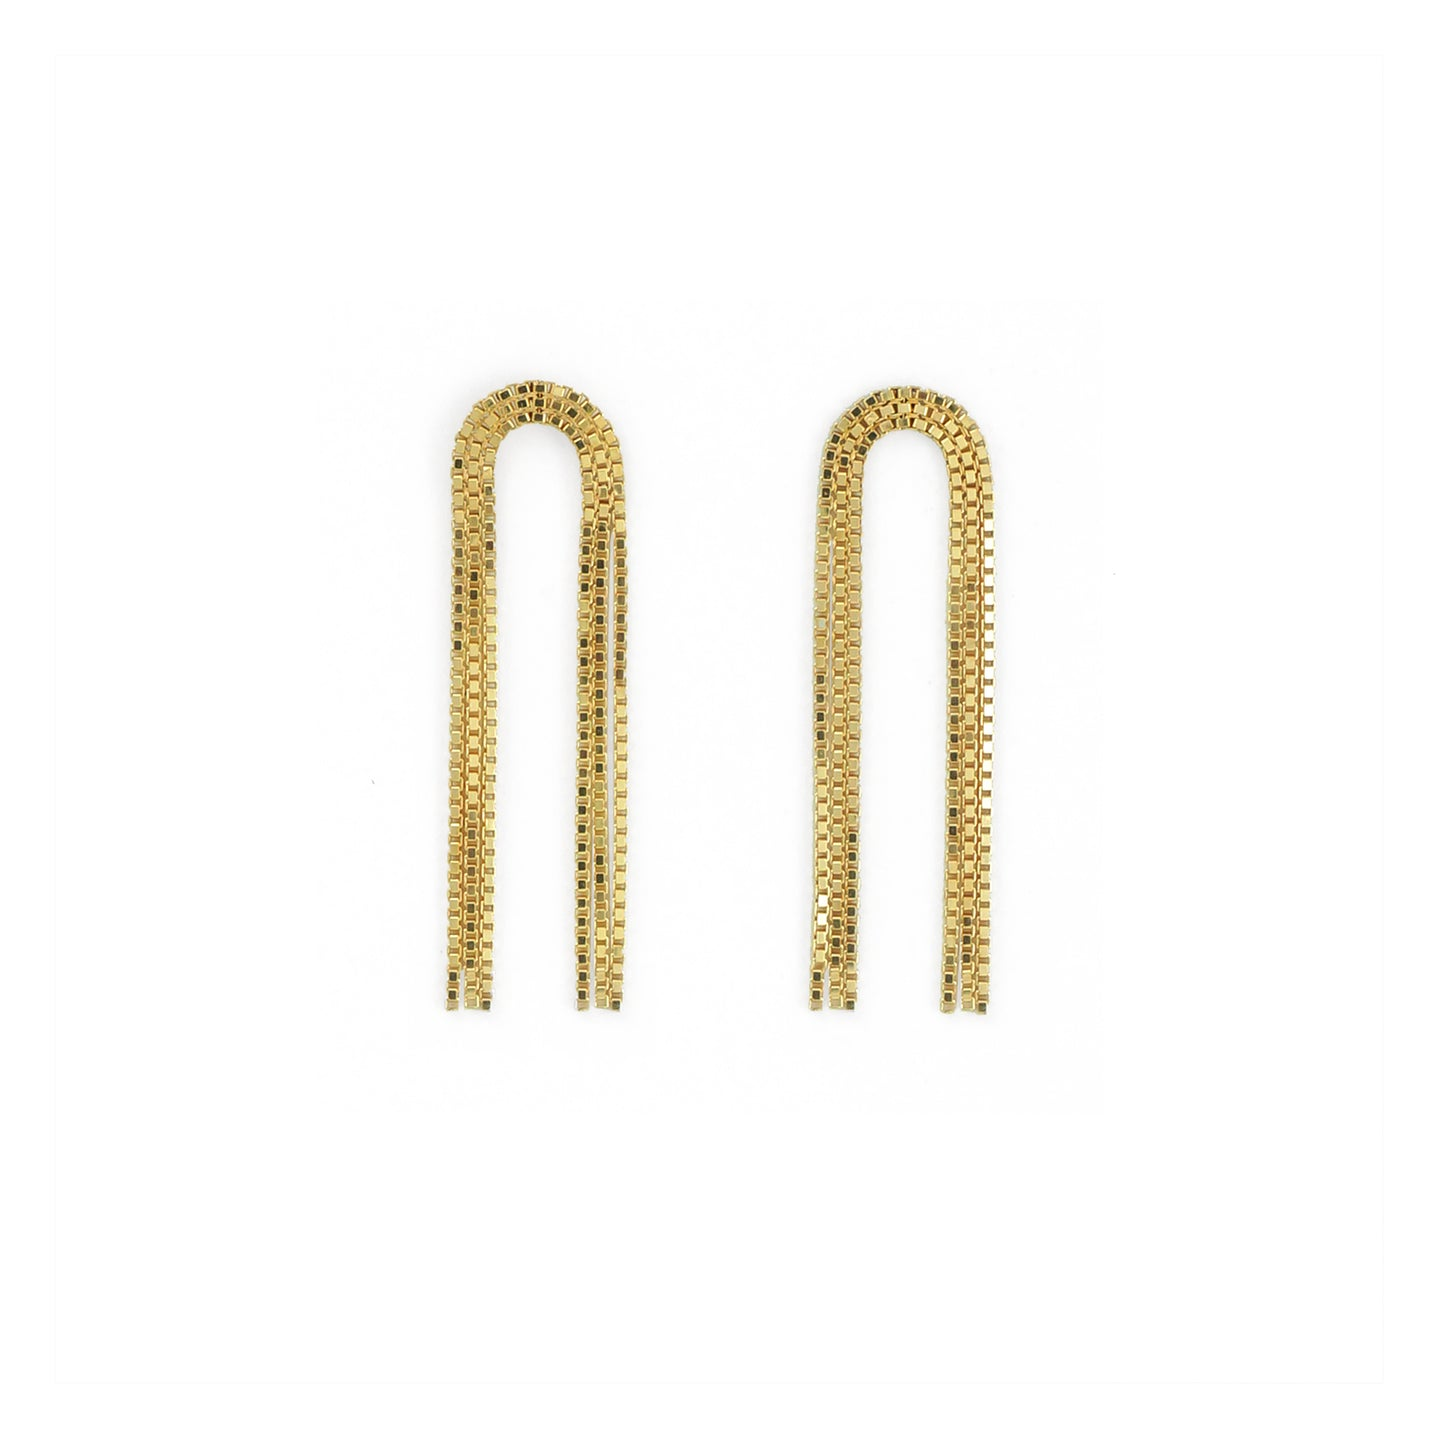 Martine Viergever - Earring - Arcade short - gold